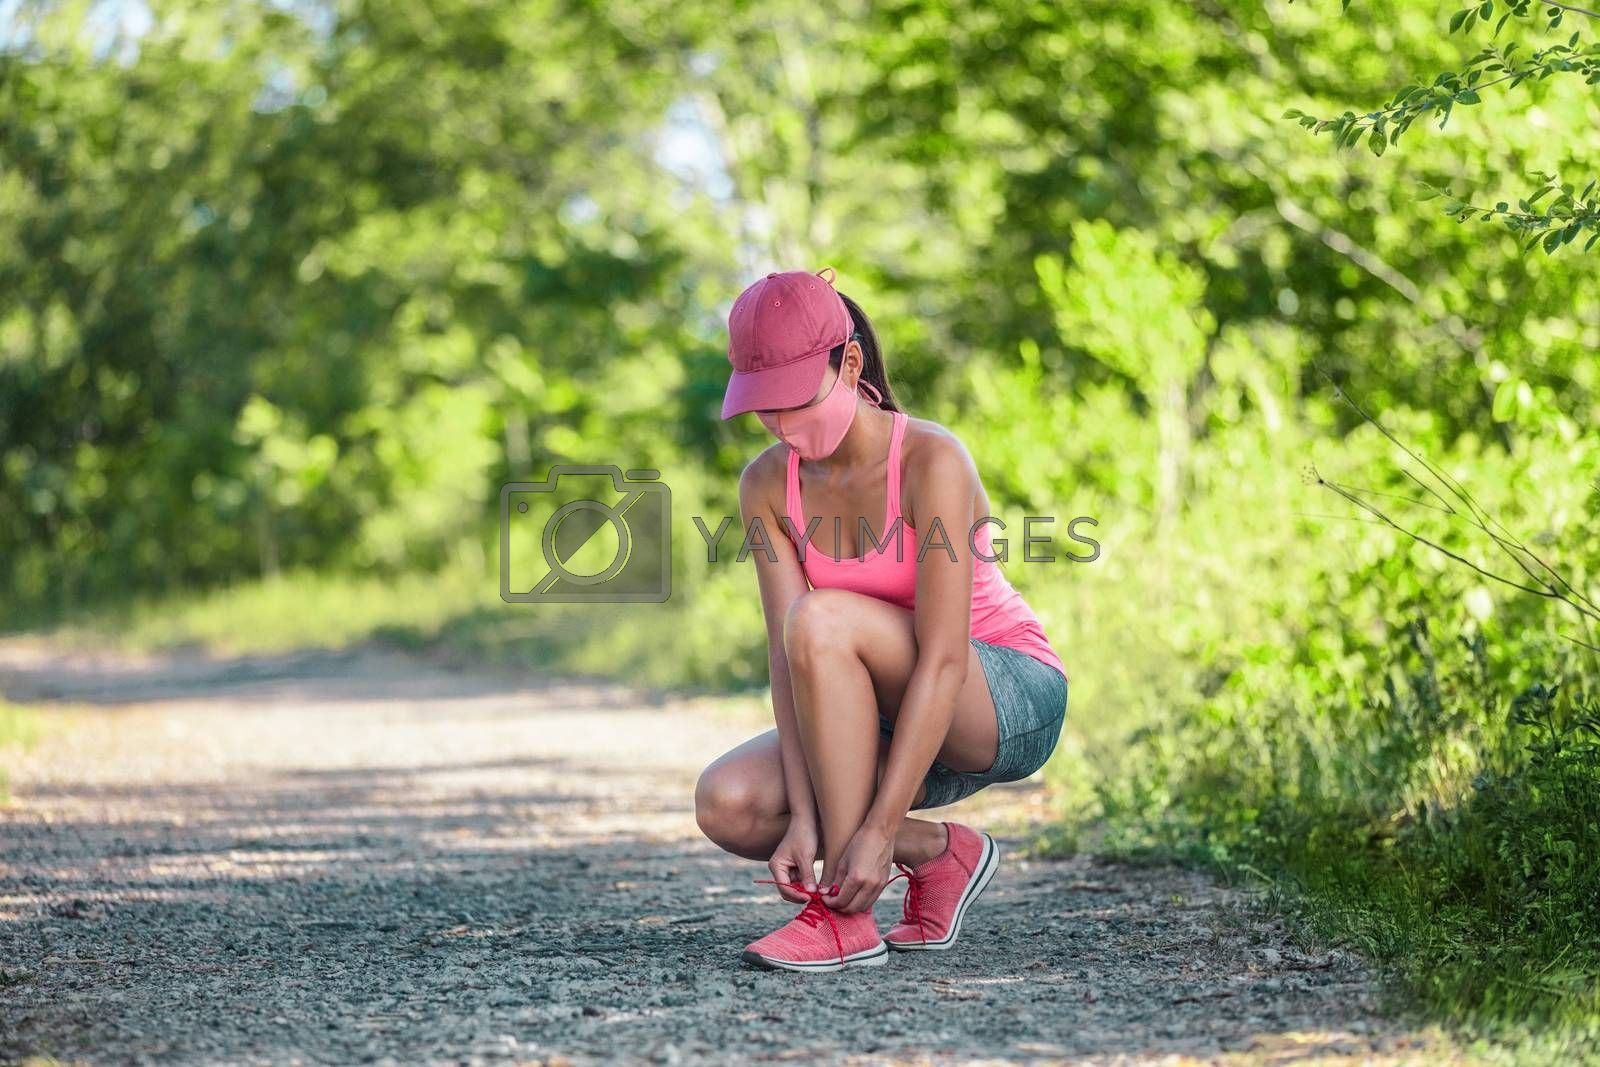 Fitness woman wearing COVID-19 face mask getting ready to do run exercise lacing running shoes for outdoor jogging during coronavirus.